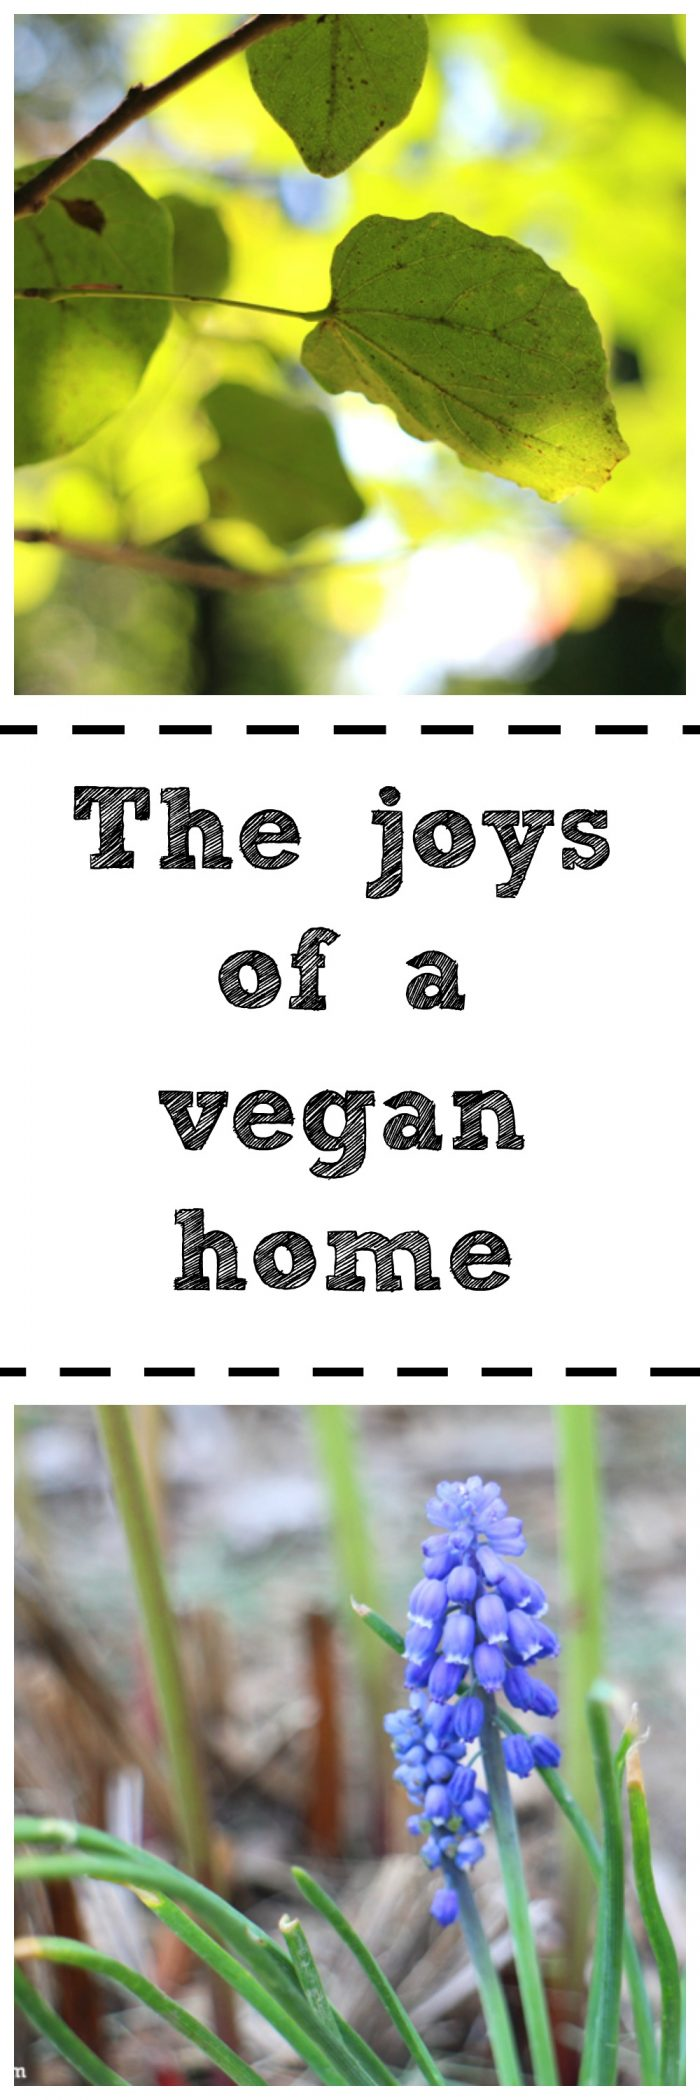 The joys of keeping a vegan home: Making boundaries, having guests, and where to draw the line | cadryskitchen.com